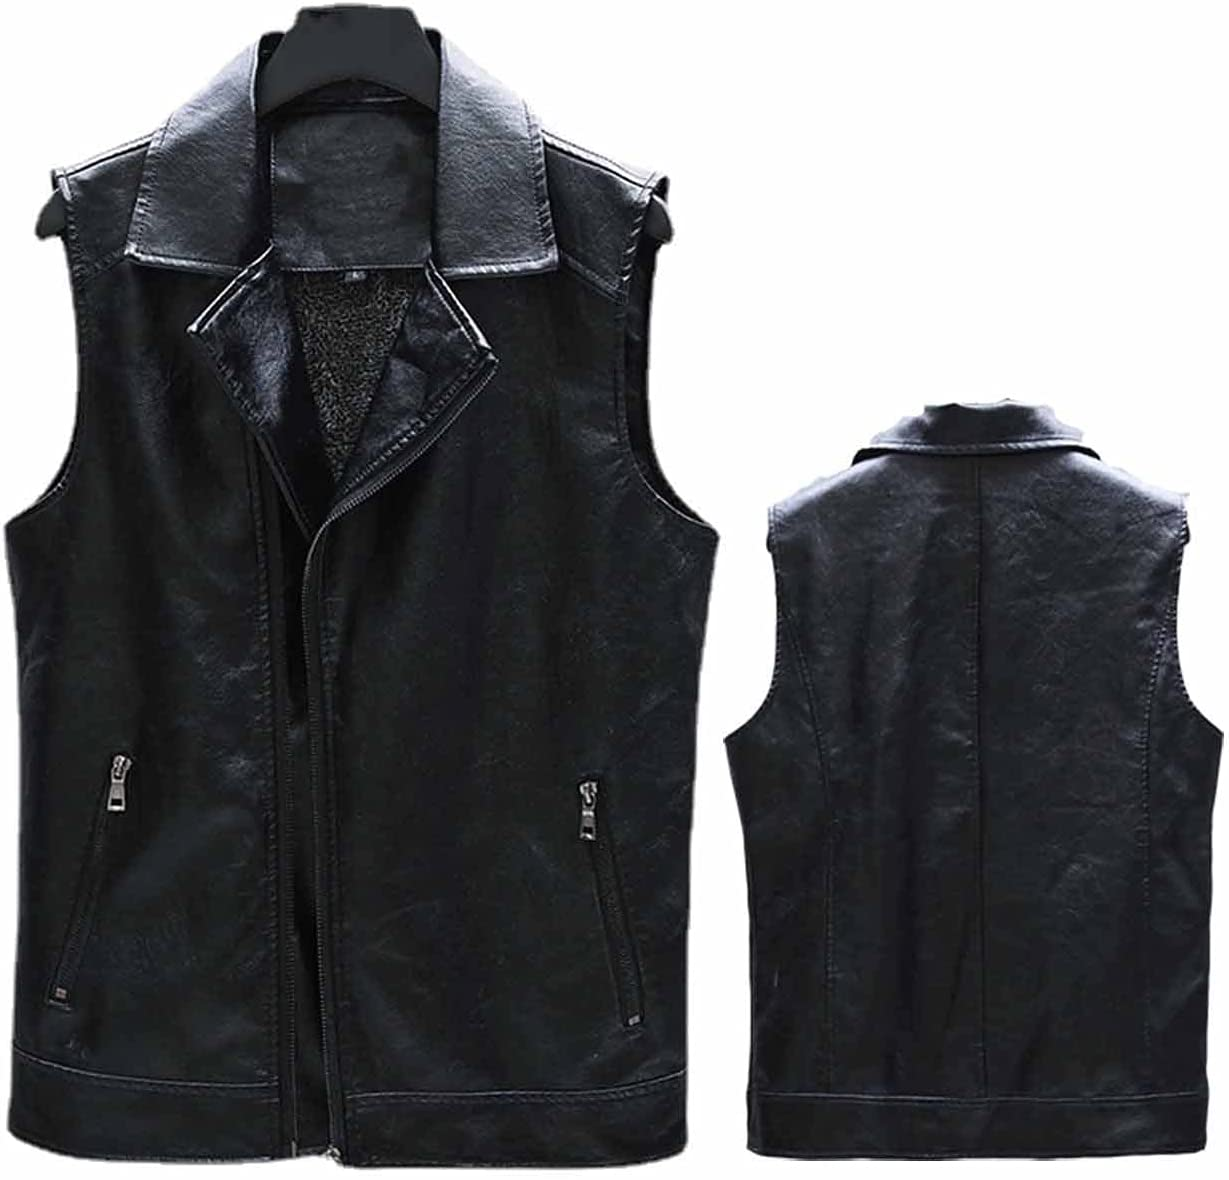 YXYECEIPENO Motorcycle Riding Leather Vest Lapel Leather Vest Jacket Artificial Leather Fabric, Wear Wear Well Work, Waterproof, Windproof M-4XL (Color : Black, Size : X-Large)